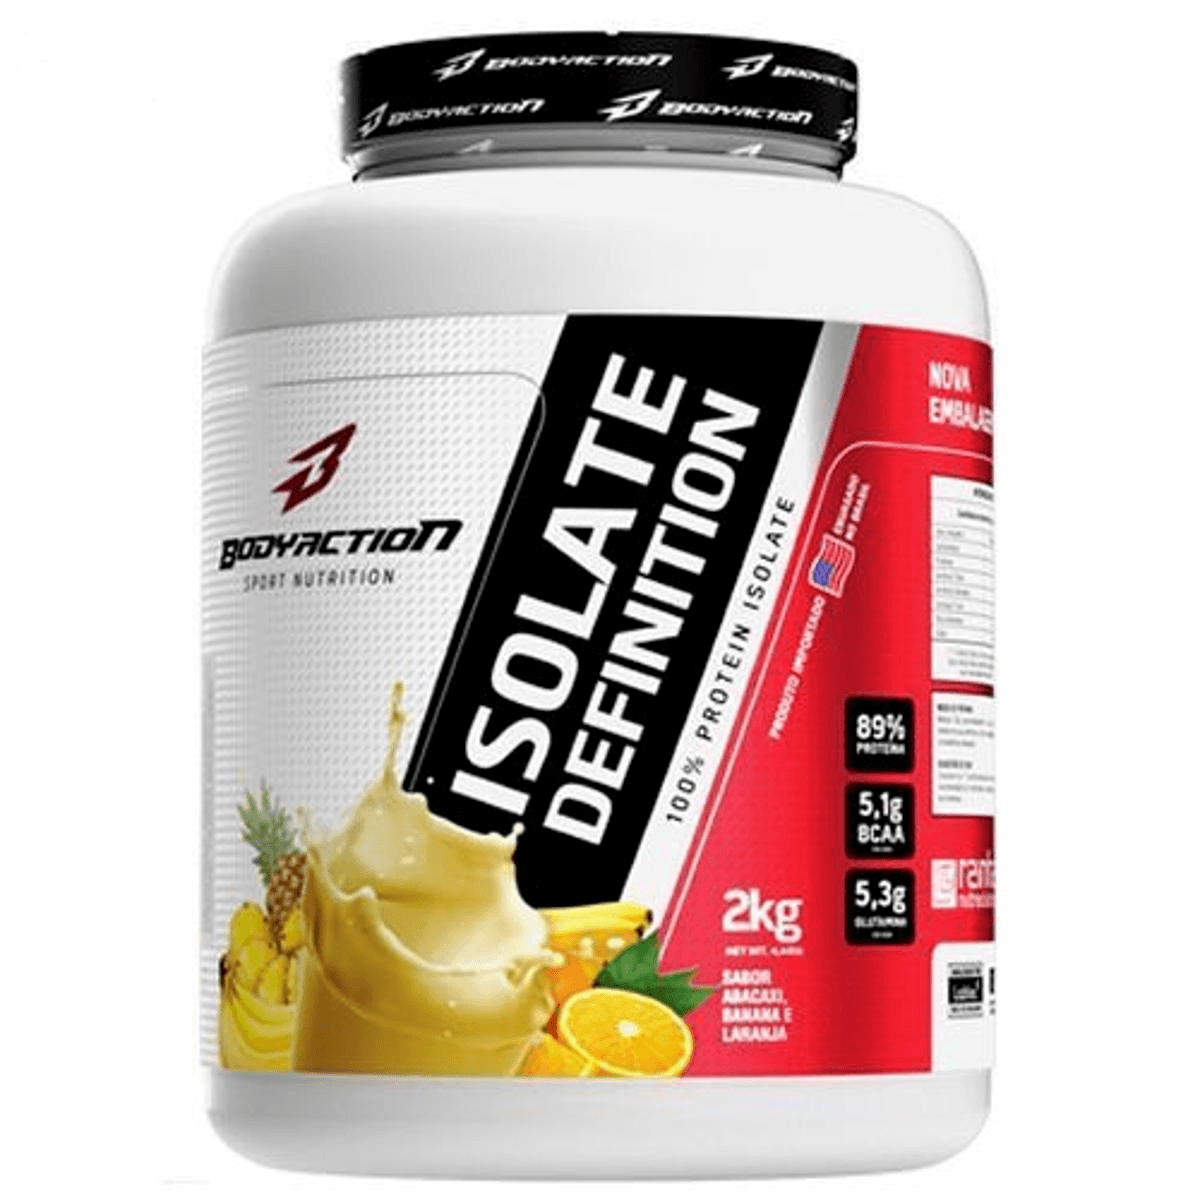 Whey Isolate Definition Protein 2Kg Vitamina De Frutas Bodyaction